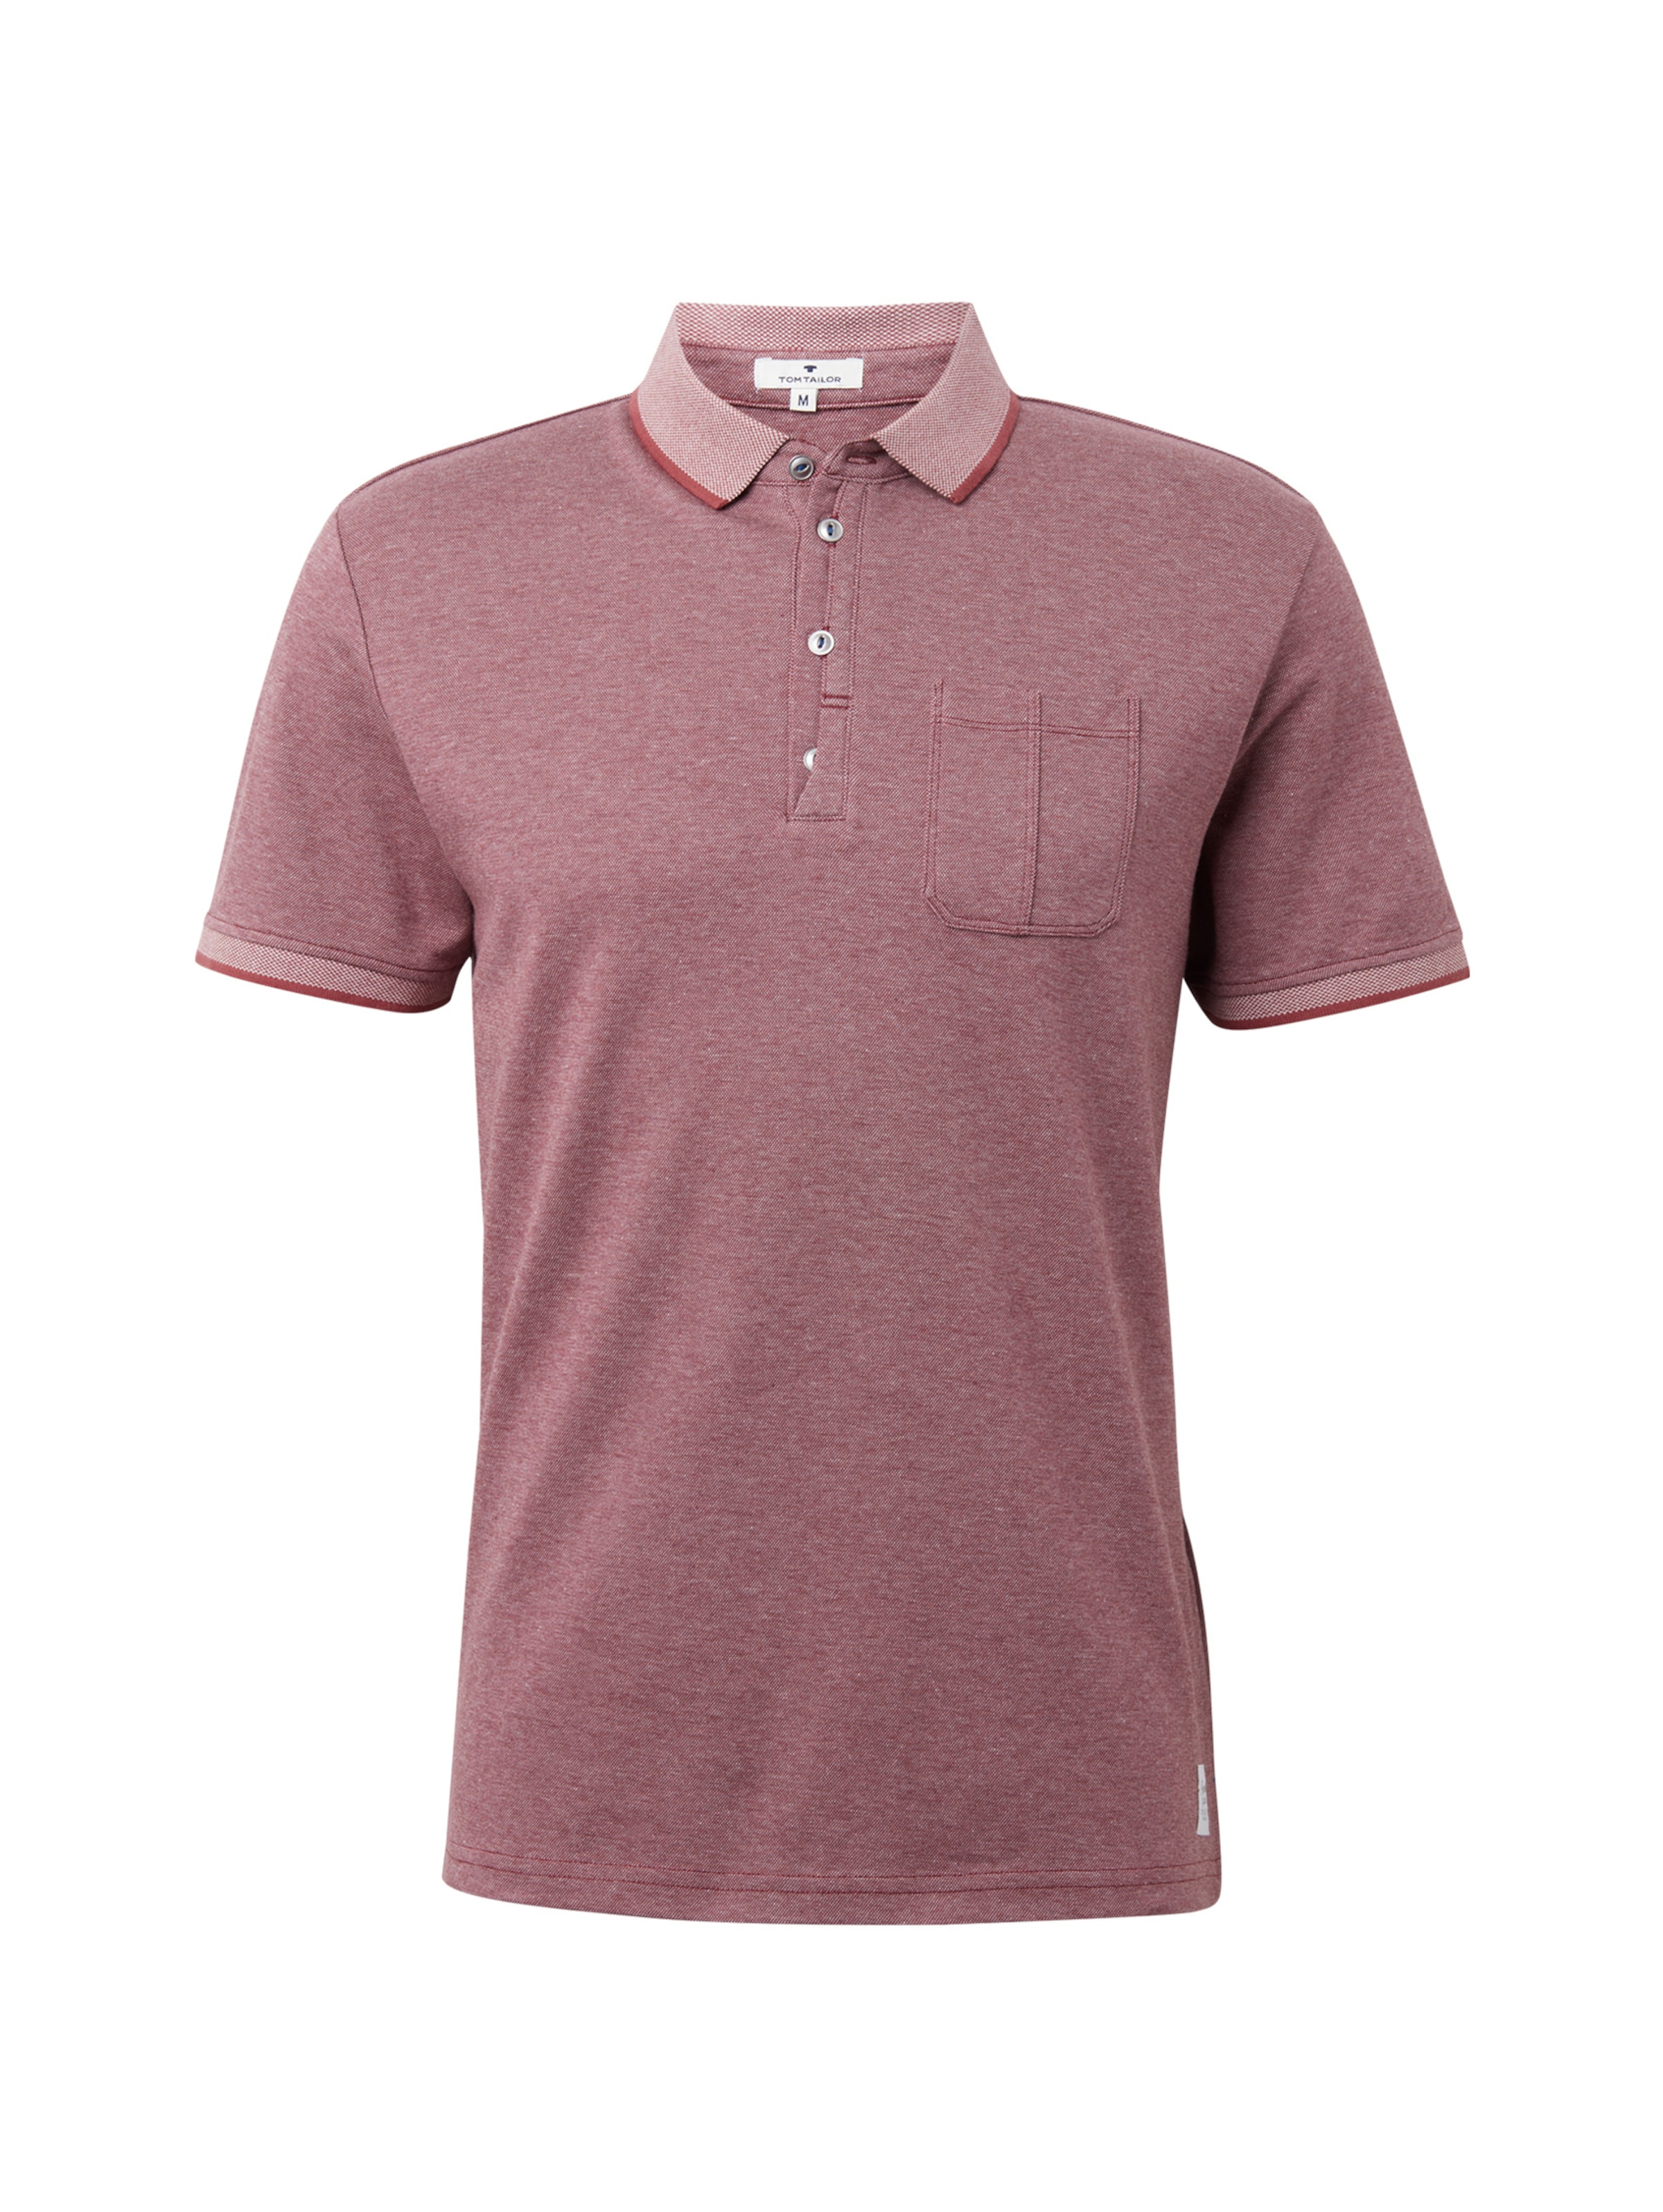 Tailor Poloshirts Pastellrot Tom In Mehrfarbiges Poloshirt doeBrxCW